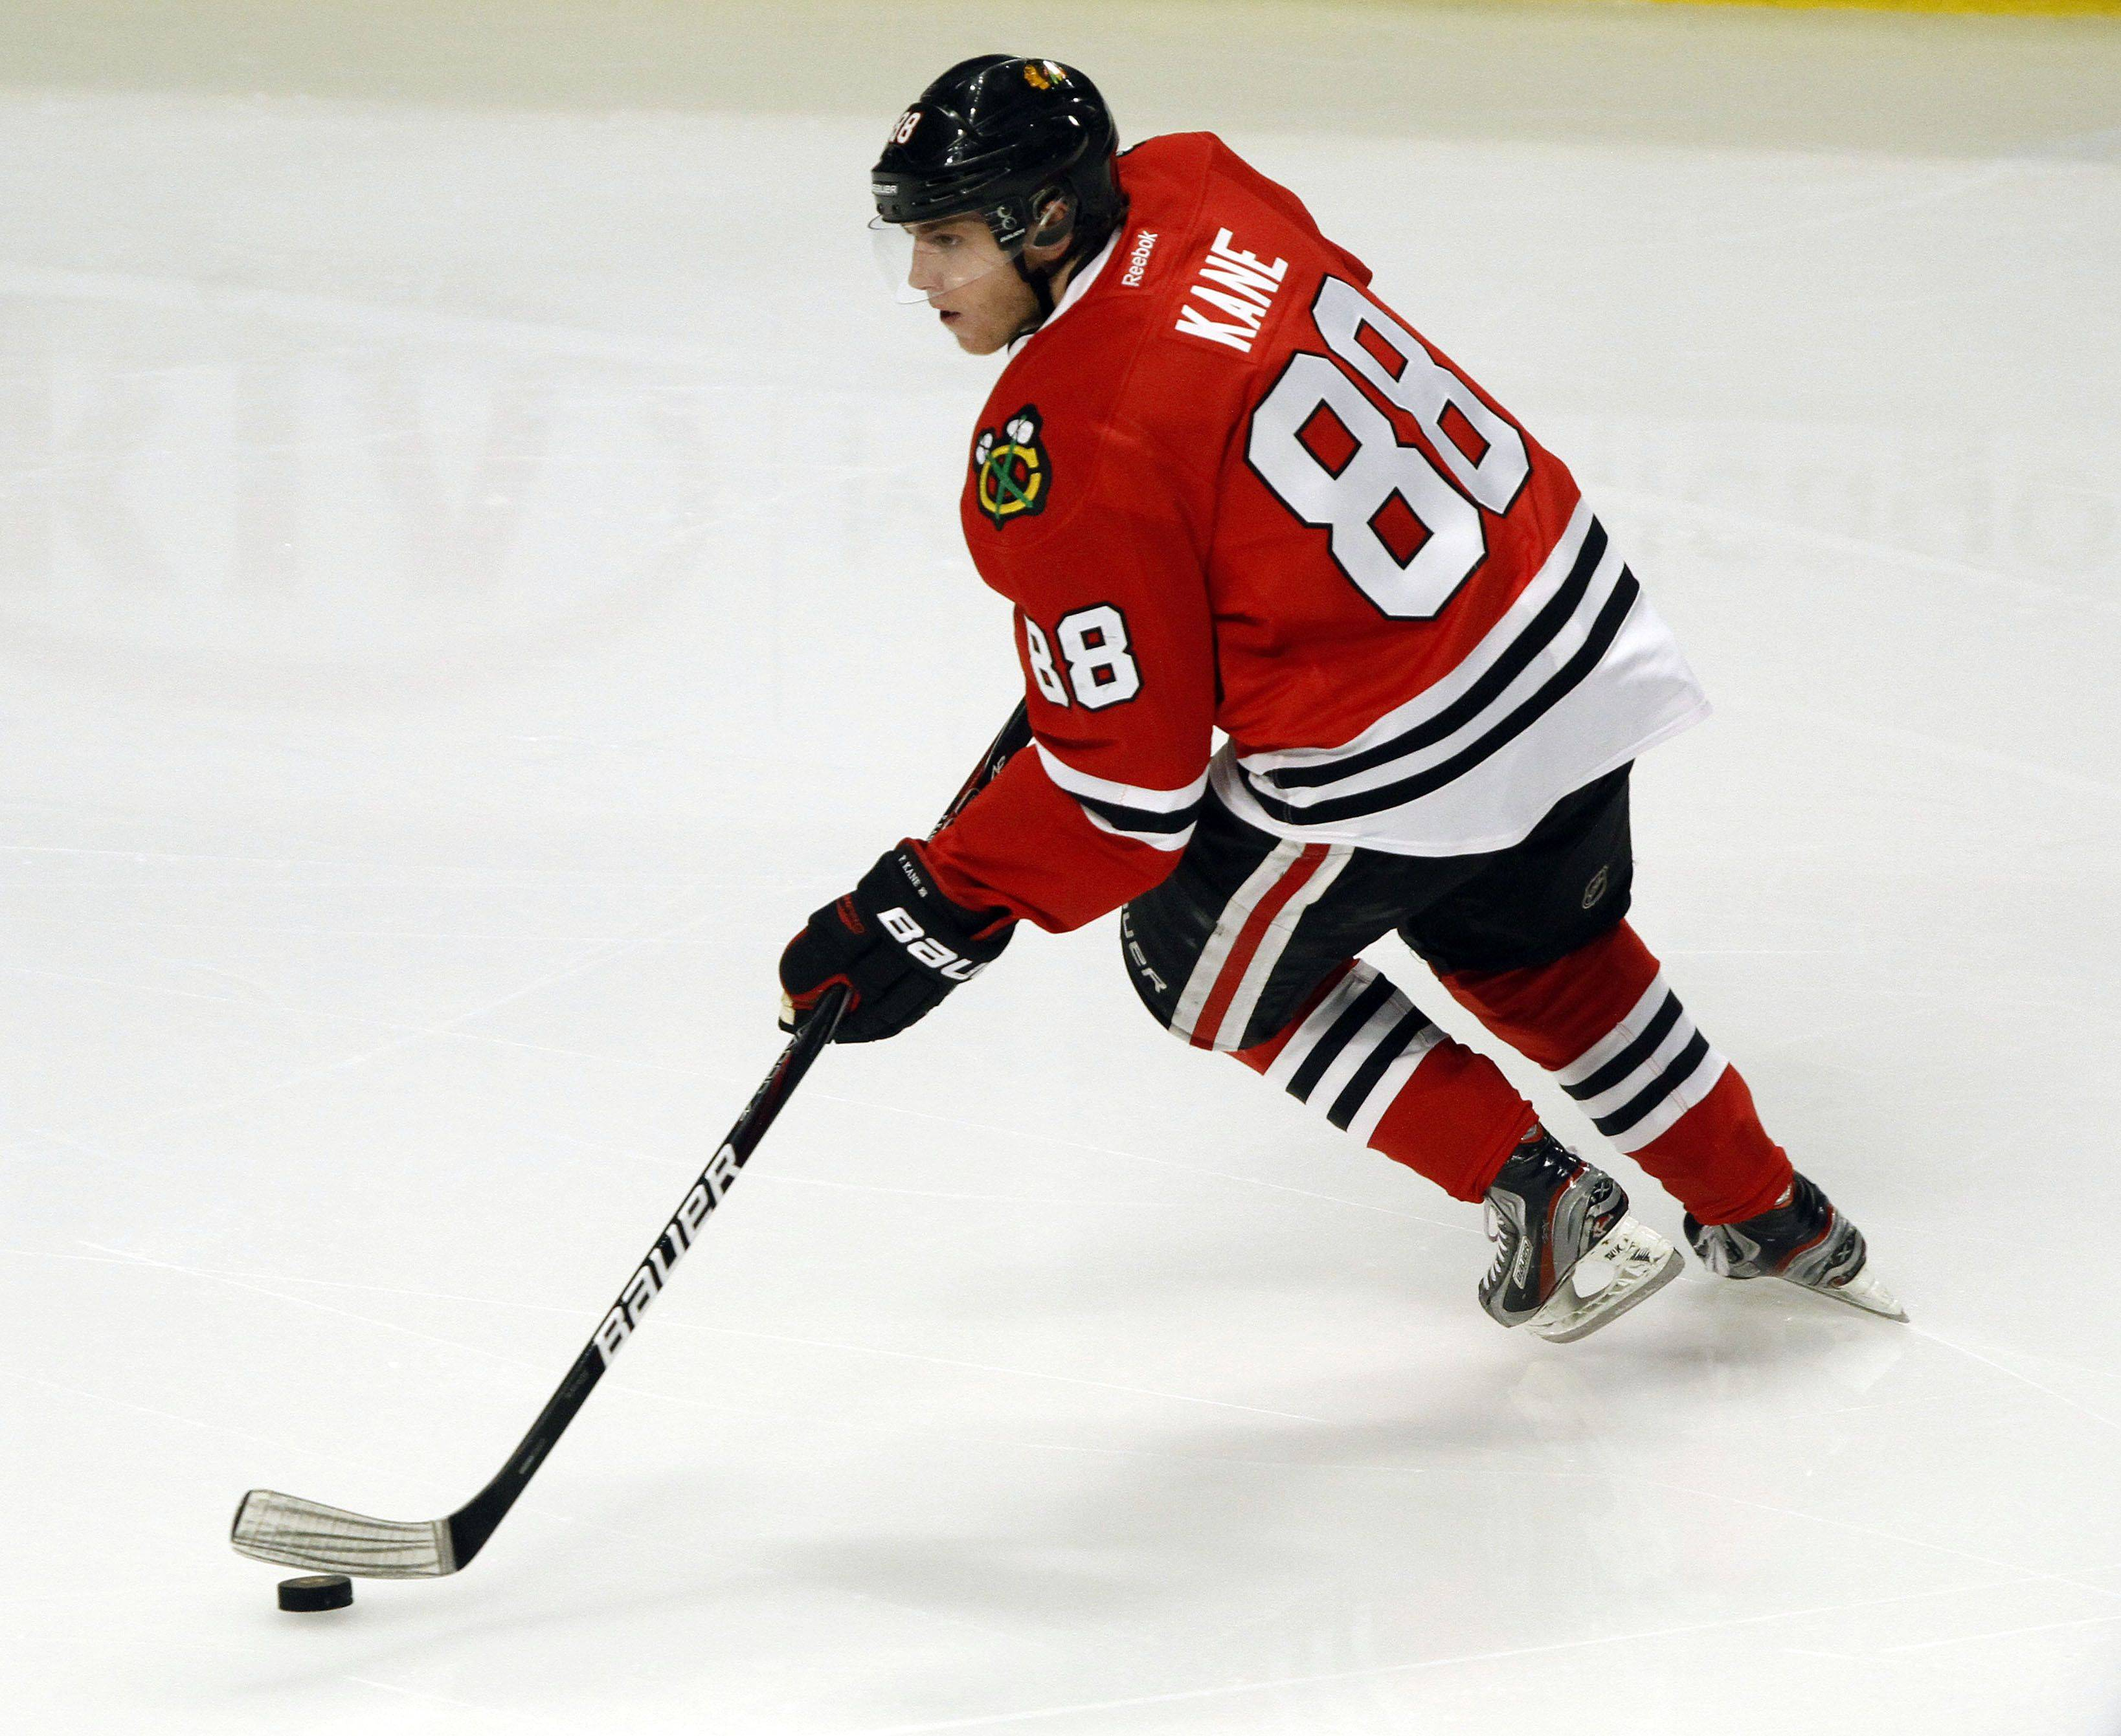 Chicago Blackhawks right wing Patrick Kane takes the puck up ice during their game against the Columbus Blue Jackets Monday night at the United Center in Chicago.